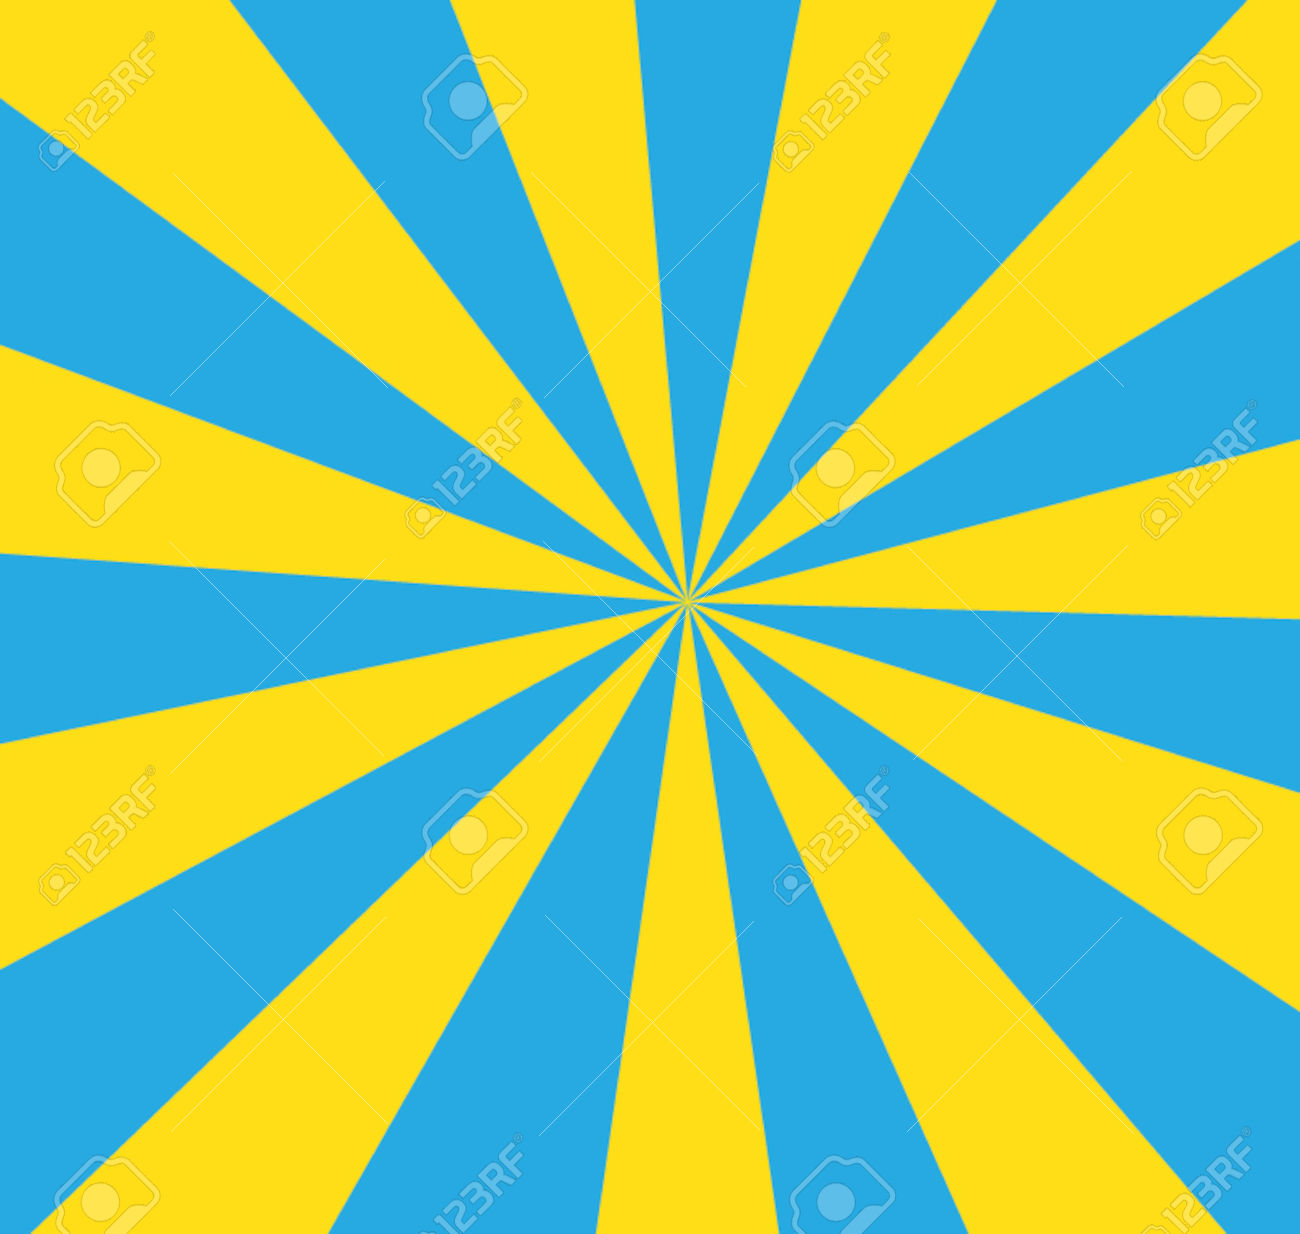 Blue and yellow striped clipart.